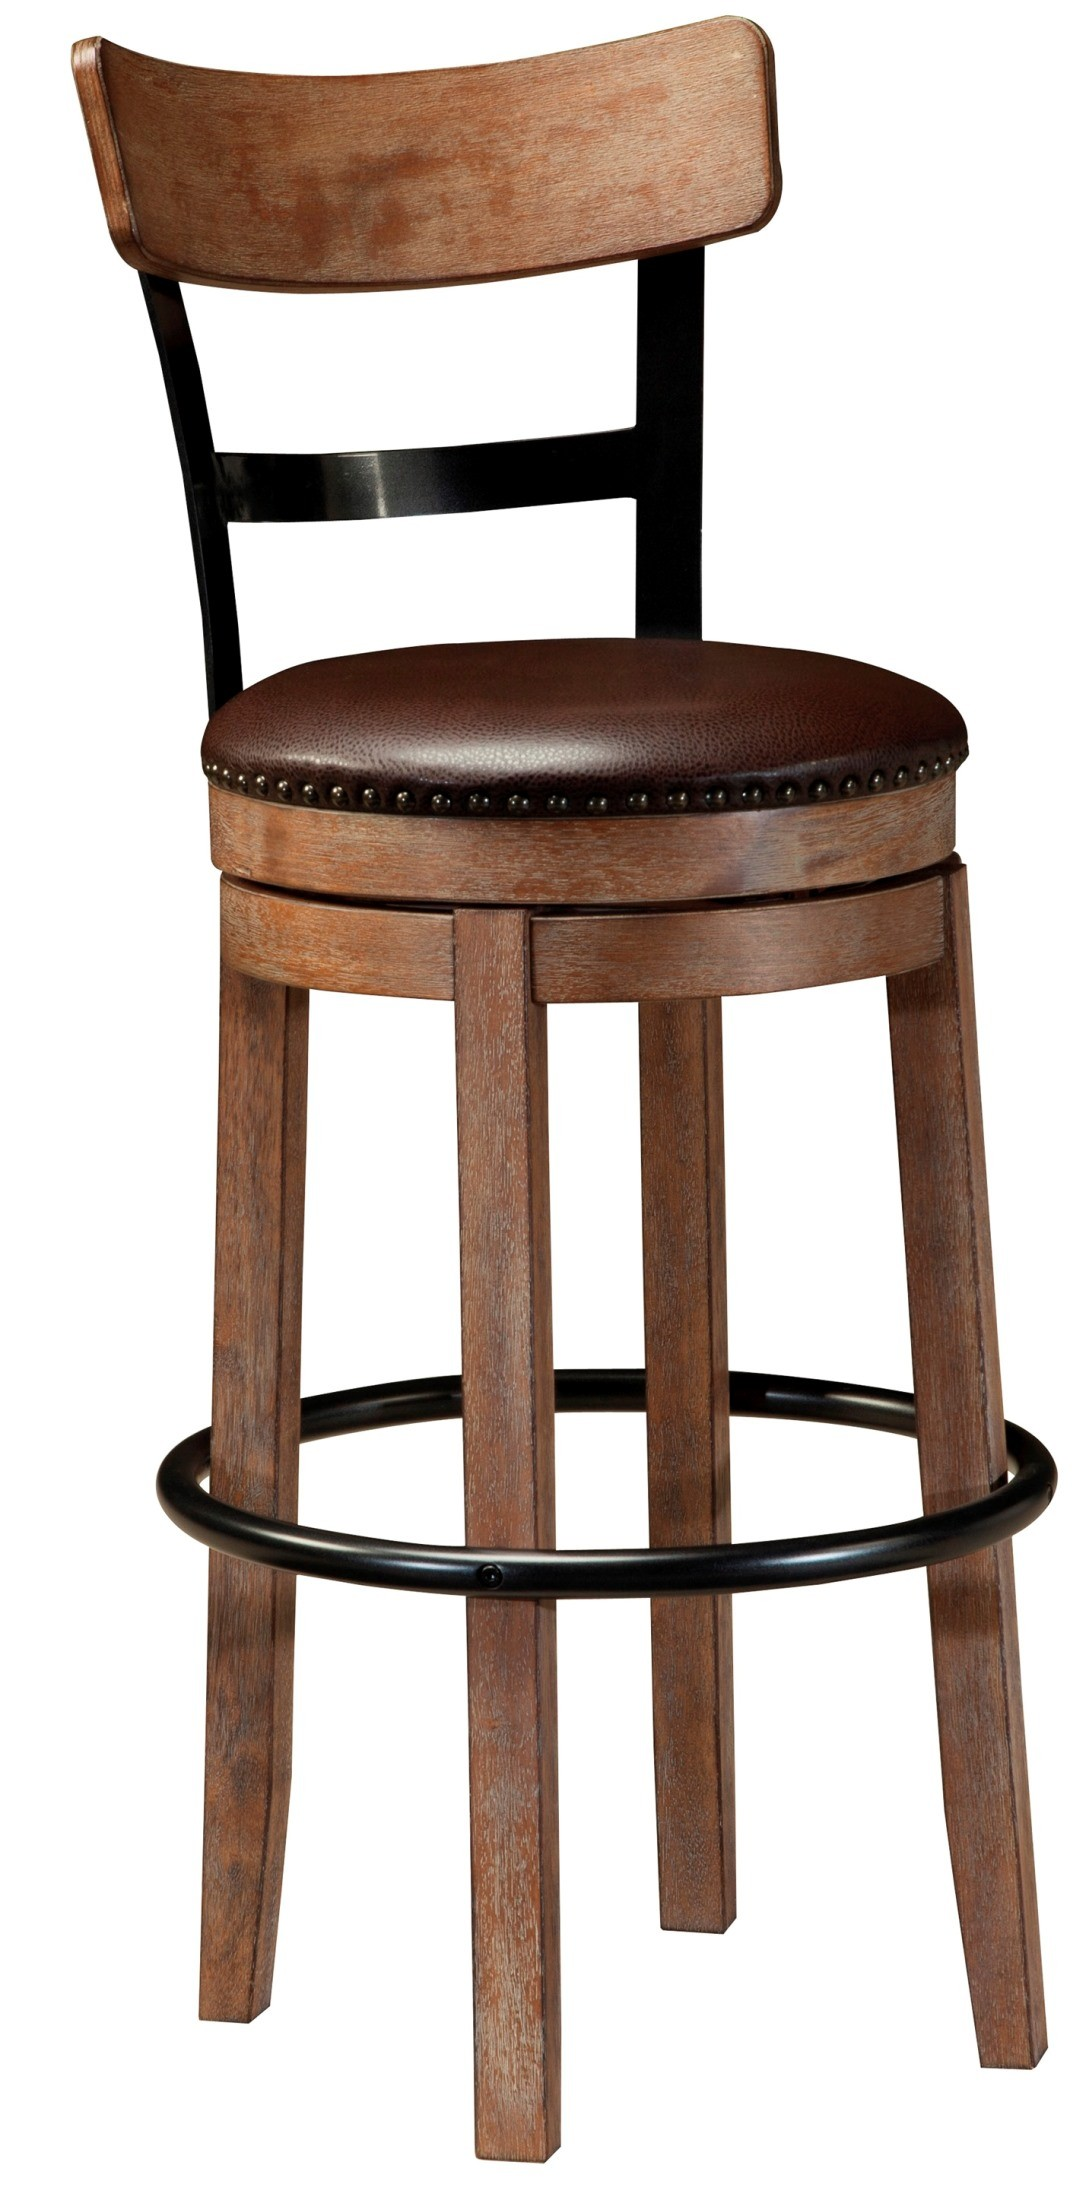 Pinnadel Tall Upholstered Swivel Barstool From Ashley